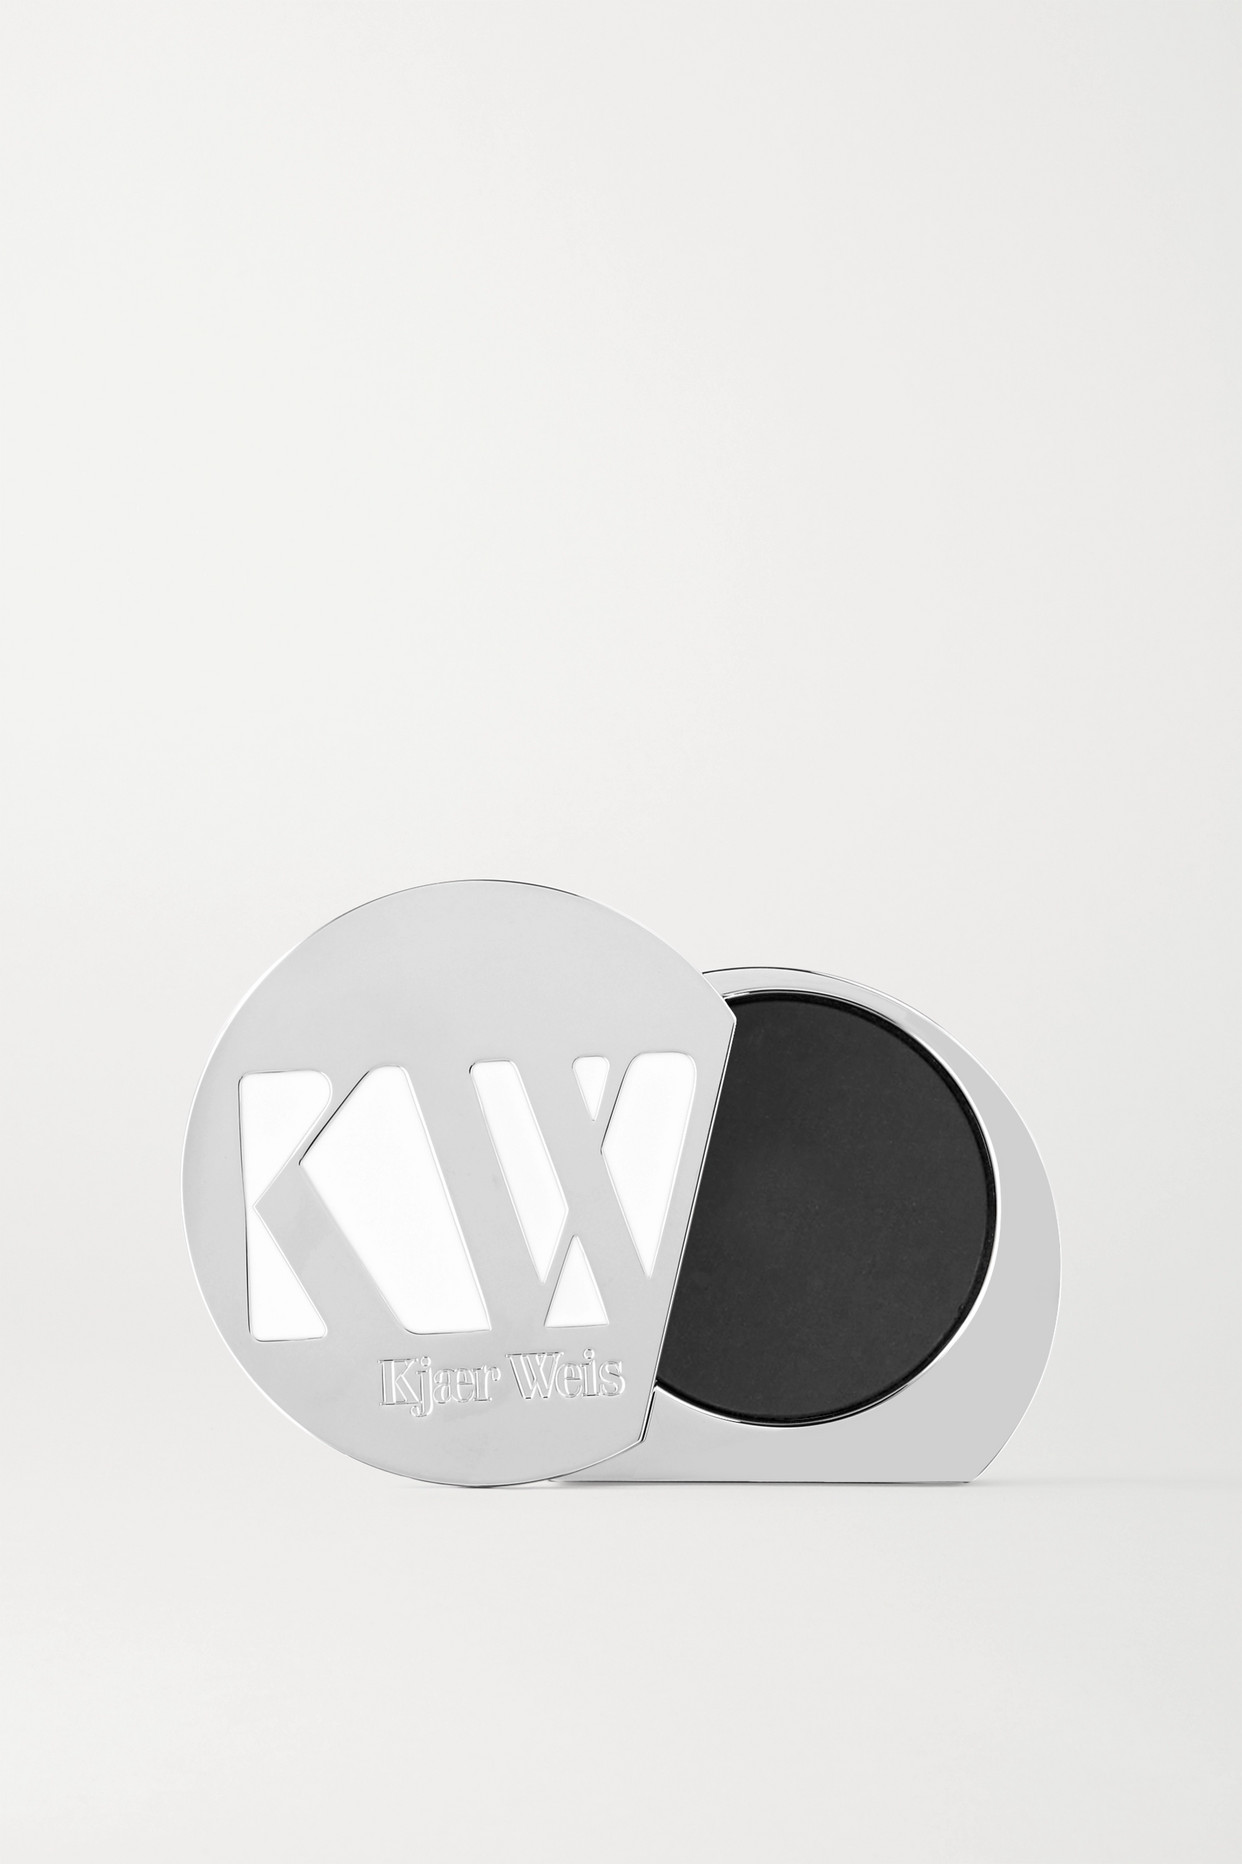 KJAER WEIS - Iconic Edition Refillable Case - Silver - one size